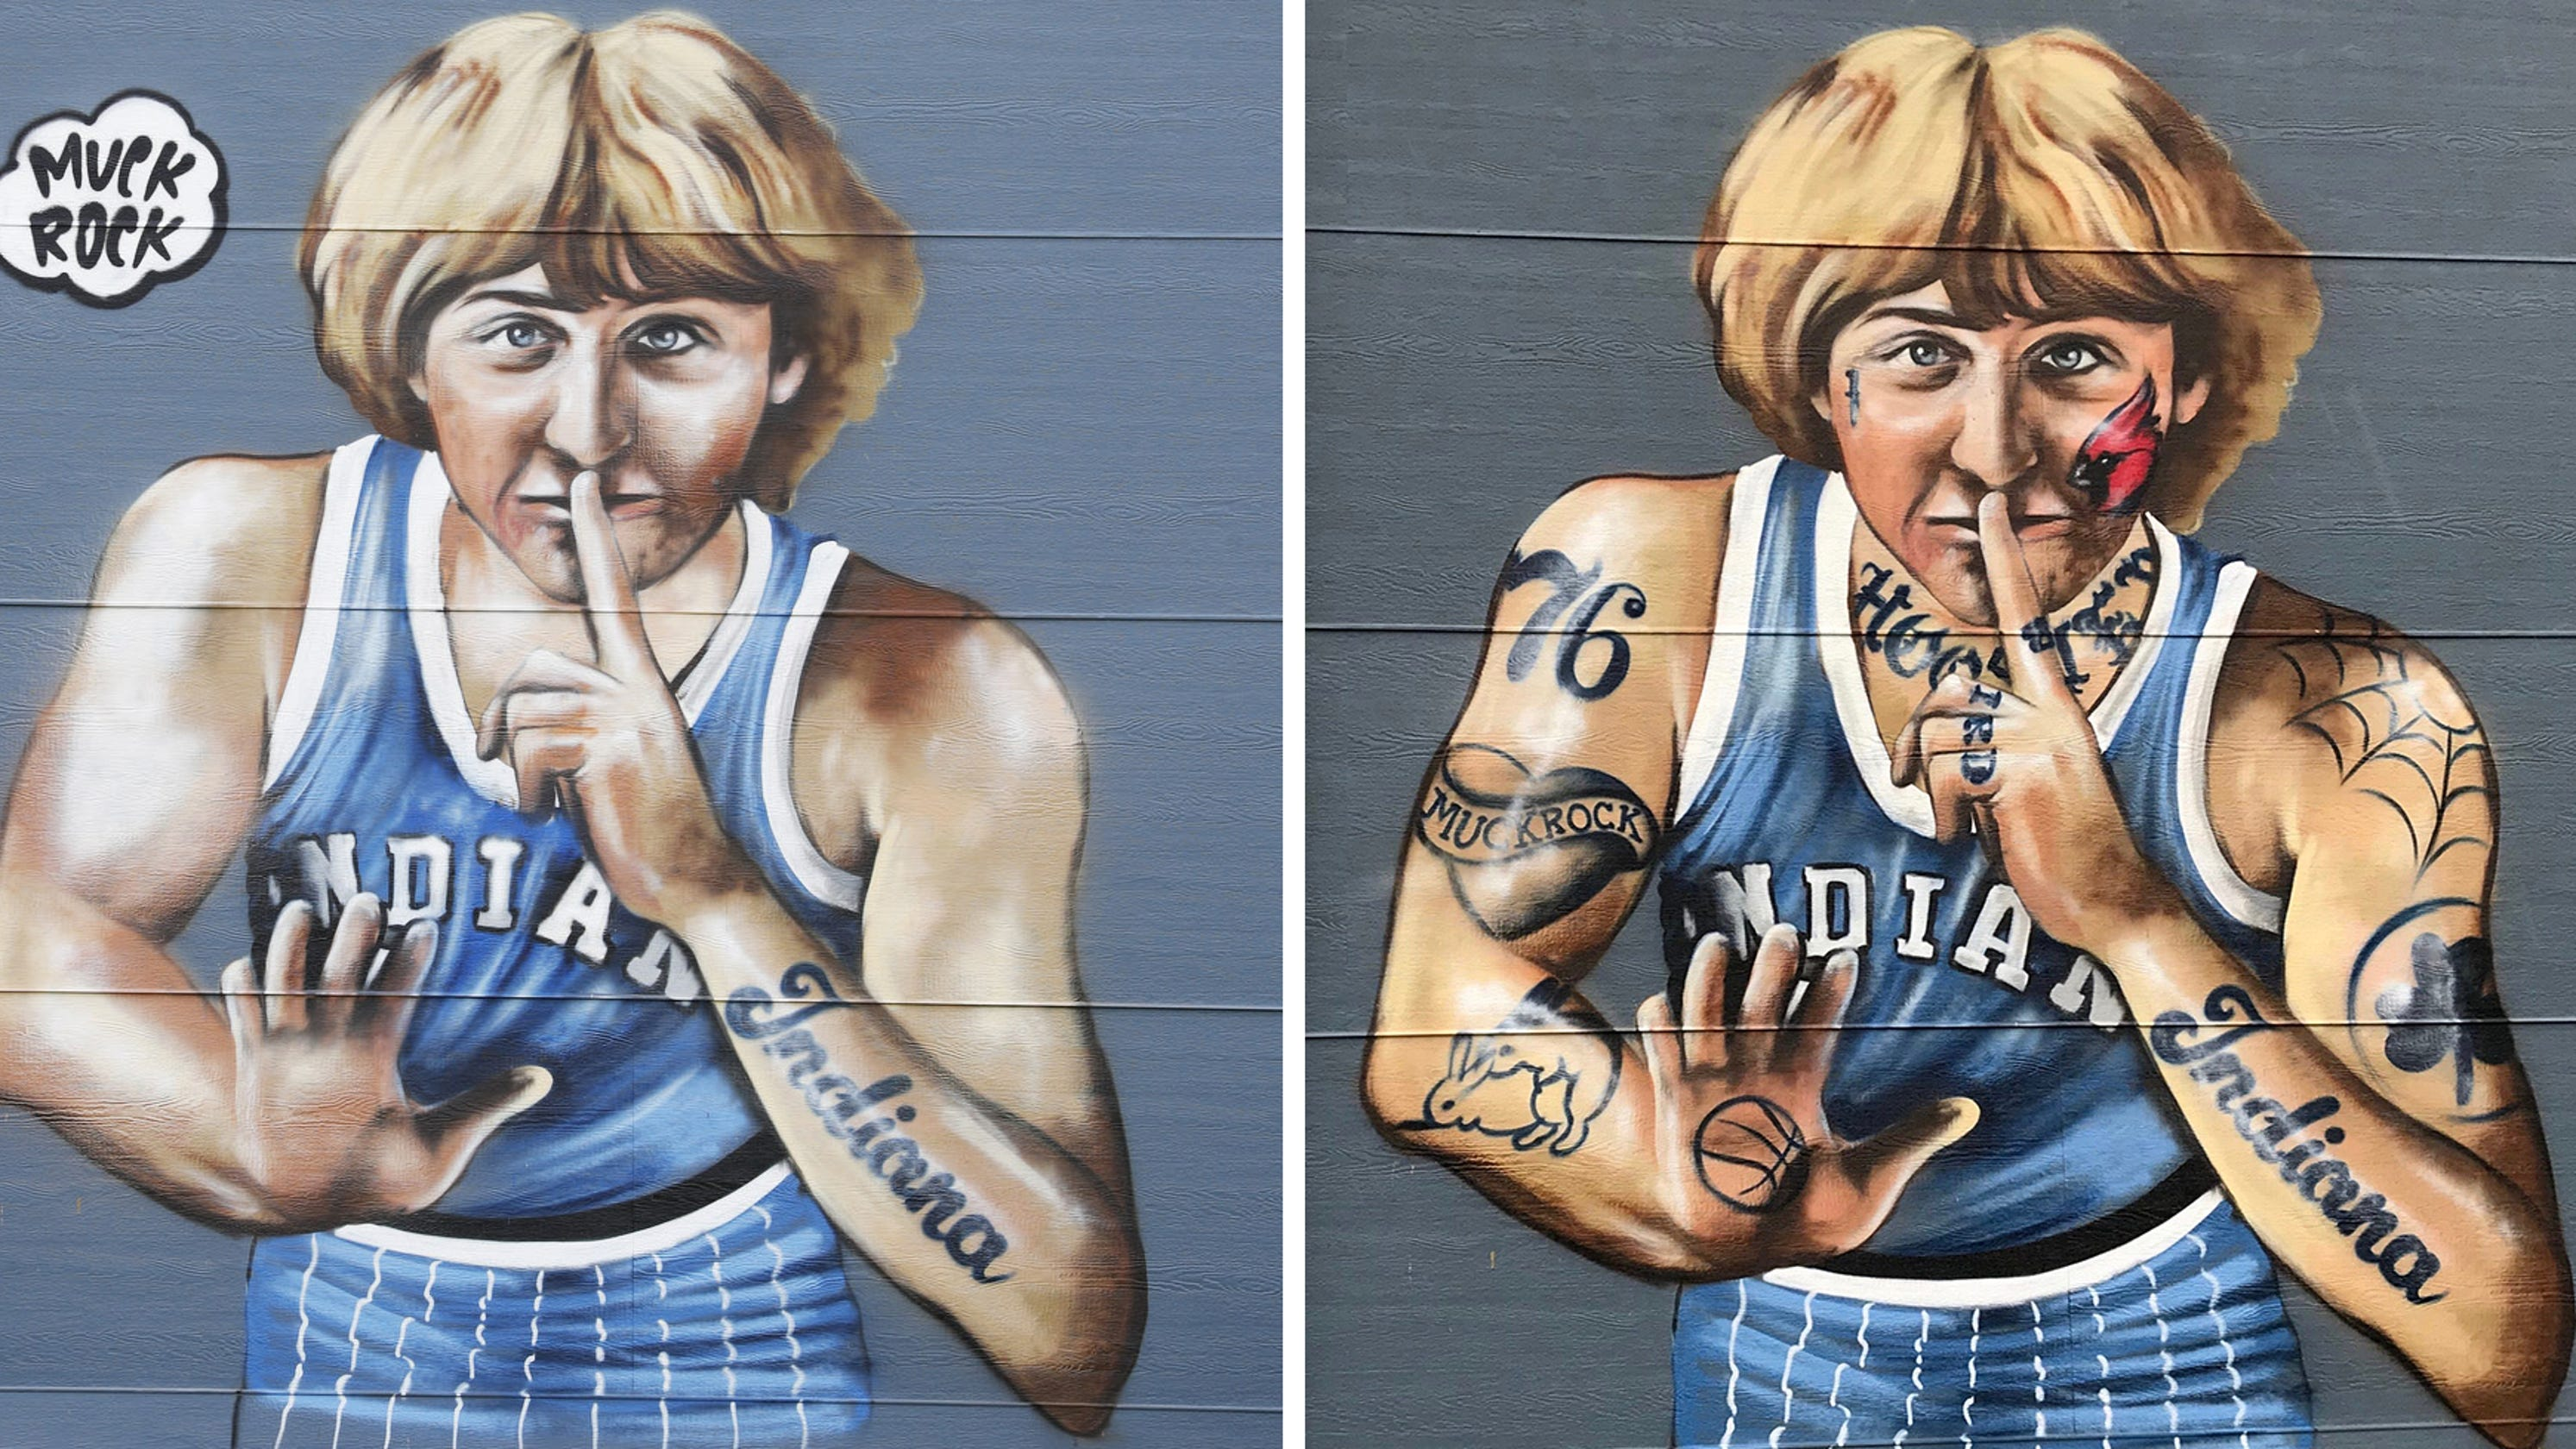 See the Larry Bird mural after artist removed nearly all tattoos at the NBA legend's request